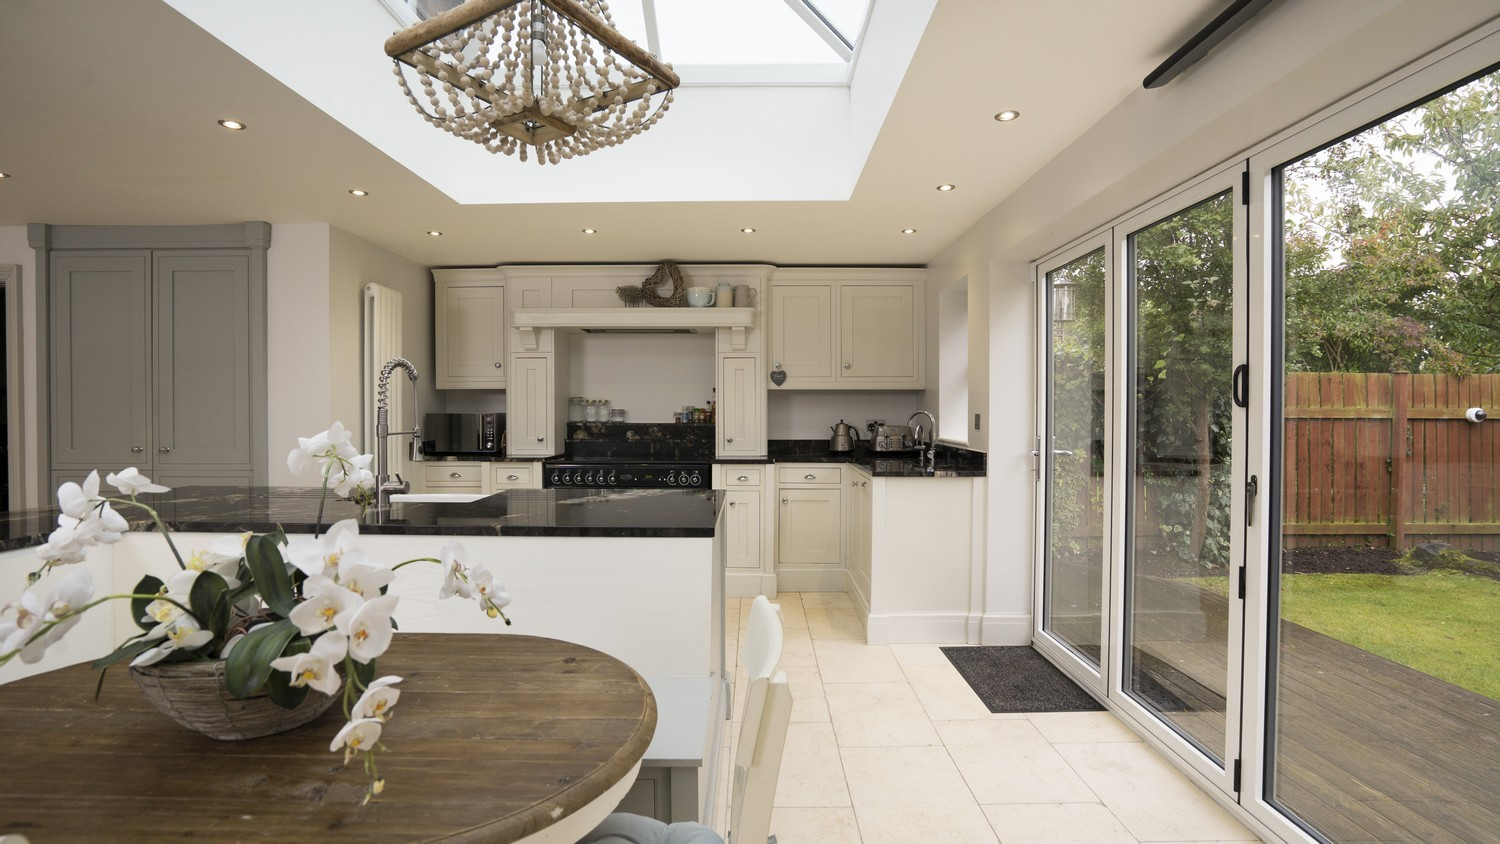 Full overview picture showing the timber In-Frame kitchen flooded with light from the roof lantern above.